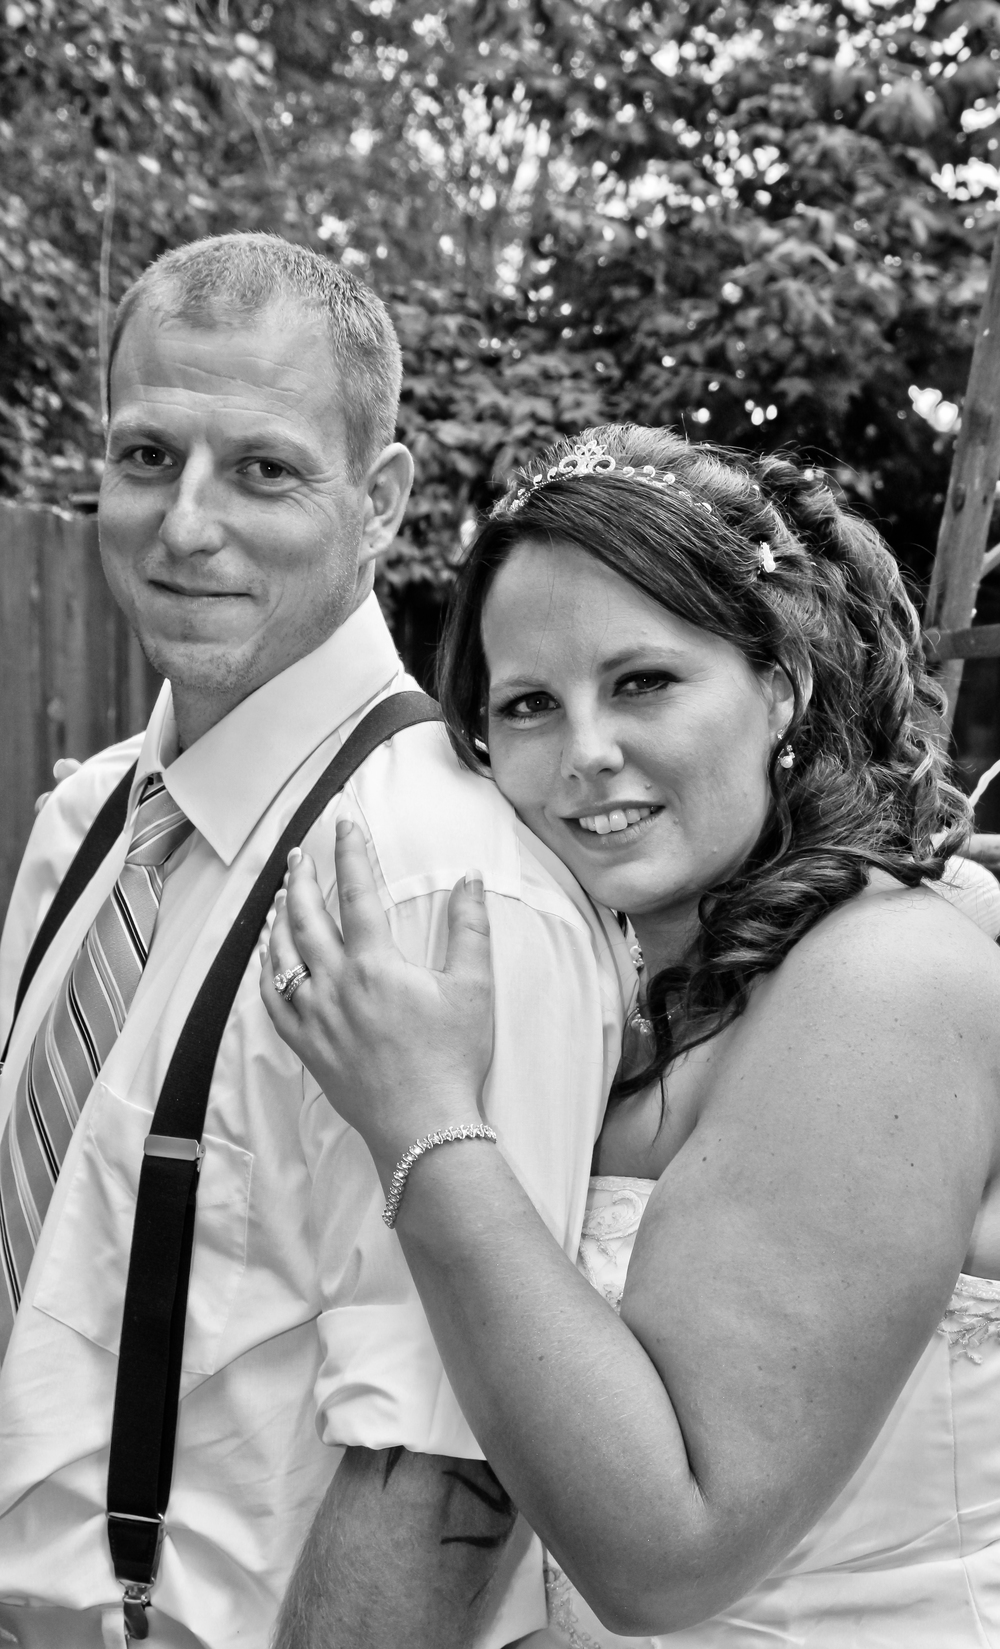 """We couldn't be more greatful to Justin. Looking for a photographer was probably the hardest decision we had to make. When it came down to it, we had just decided not to have a photographer. A long time friend booked Justin for us as a gift. Out of all all the gifts we got for our wedding, he was by far the BEST gift of all!!! He is a very easy going guy and pays attention to what you want and totally delivers excellent images! I would and will recommend Justin to anyone. Thank you for the ultimate gift and life time memories."" - Jeff & Katie"